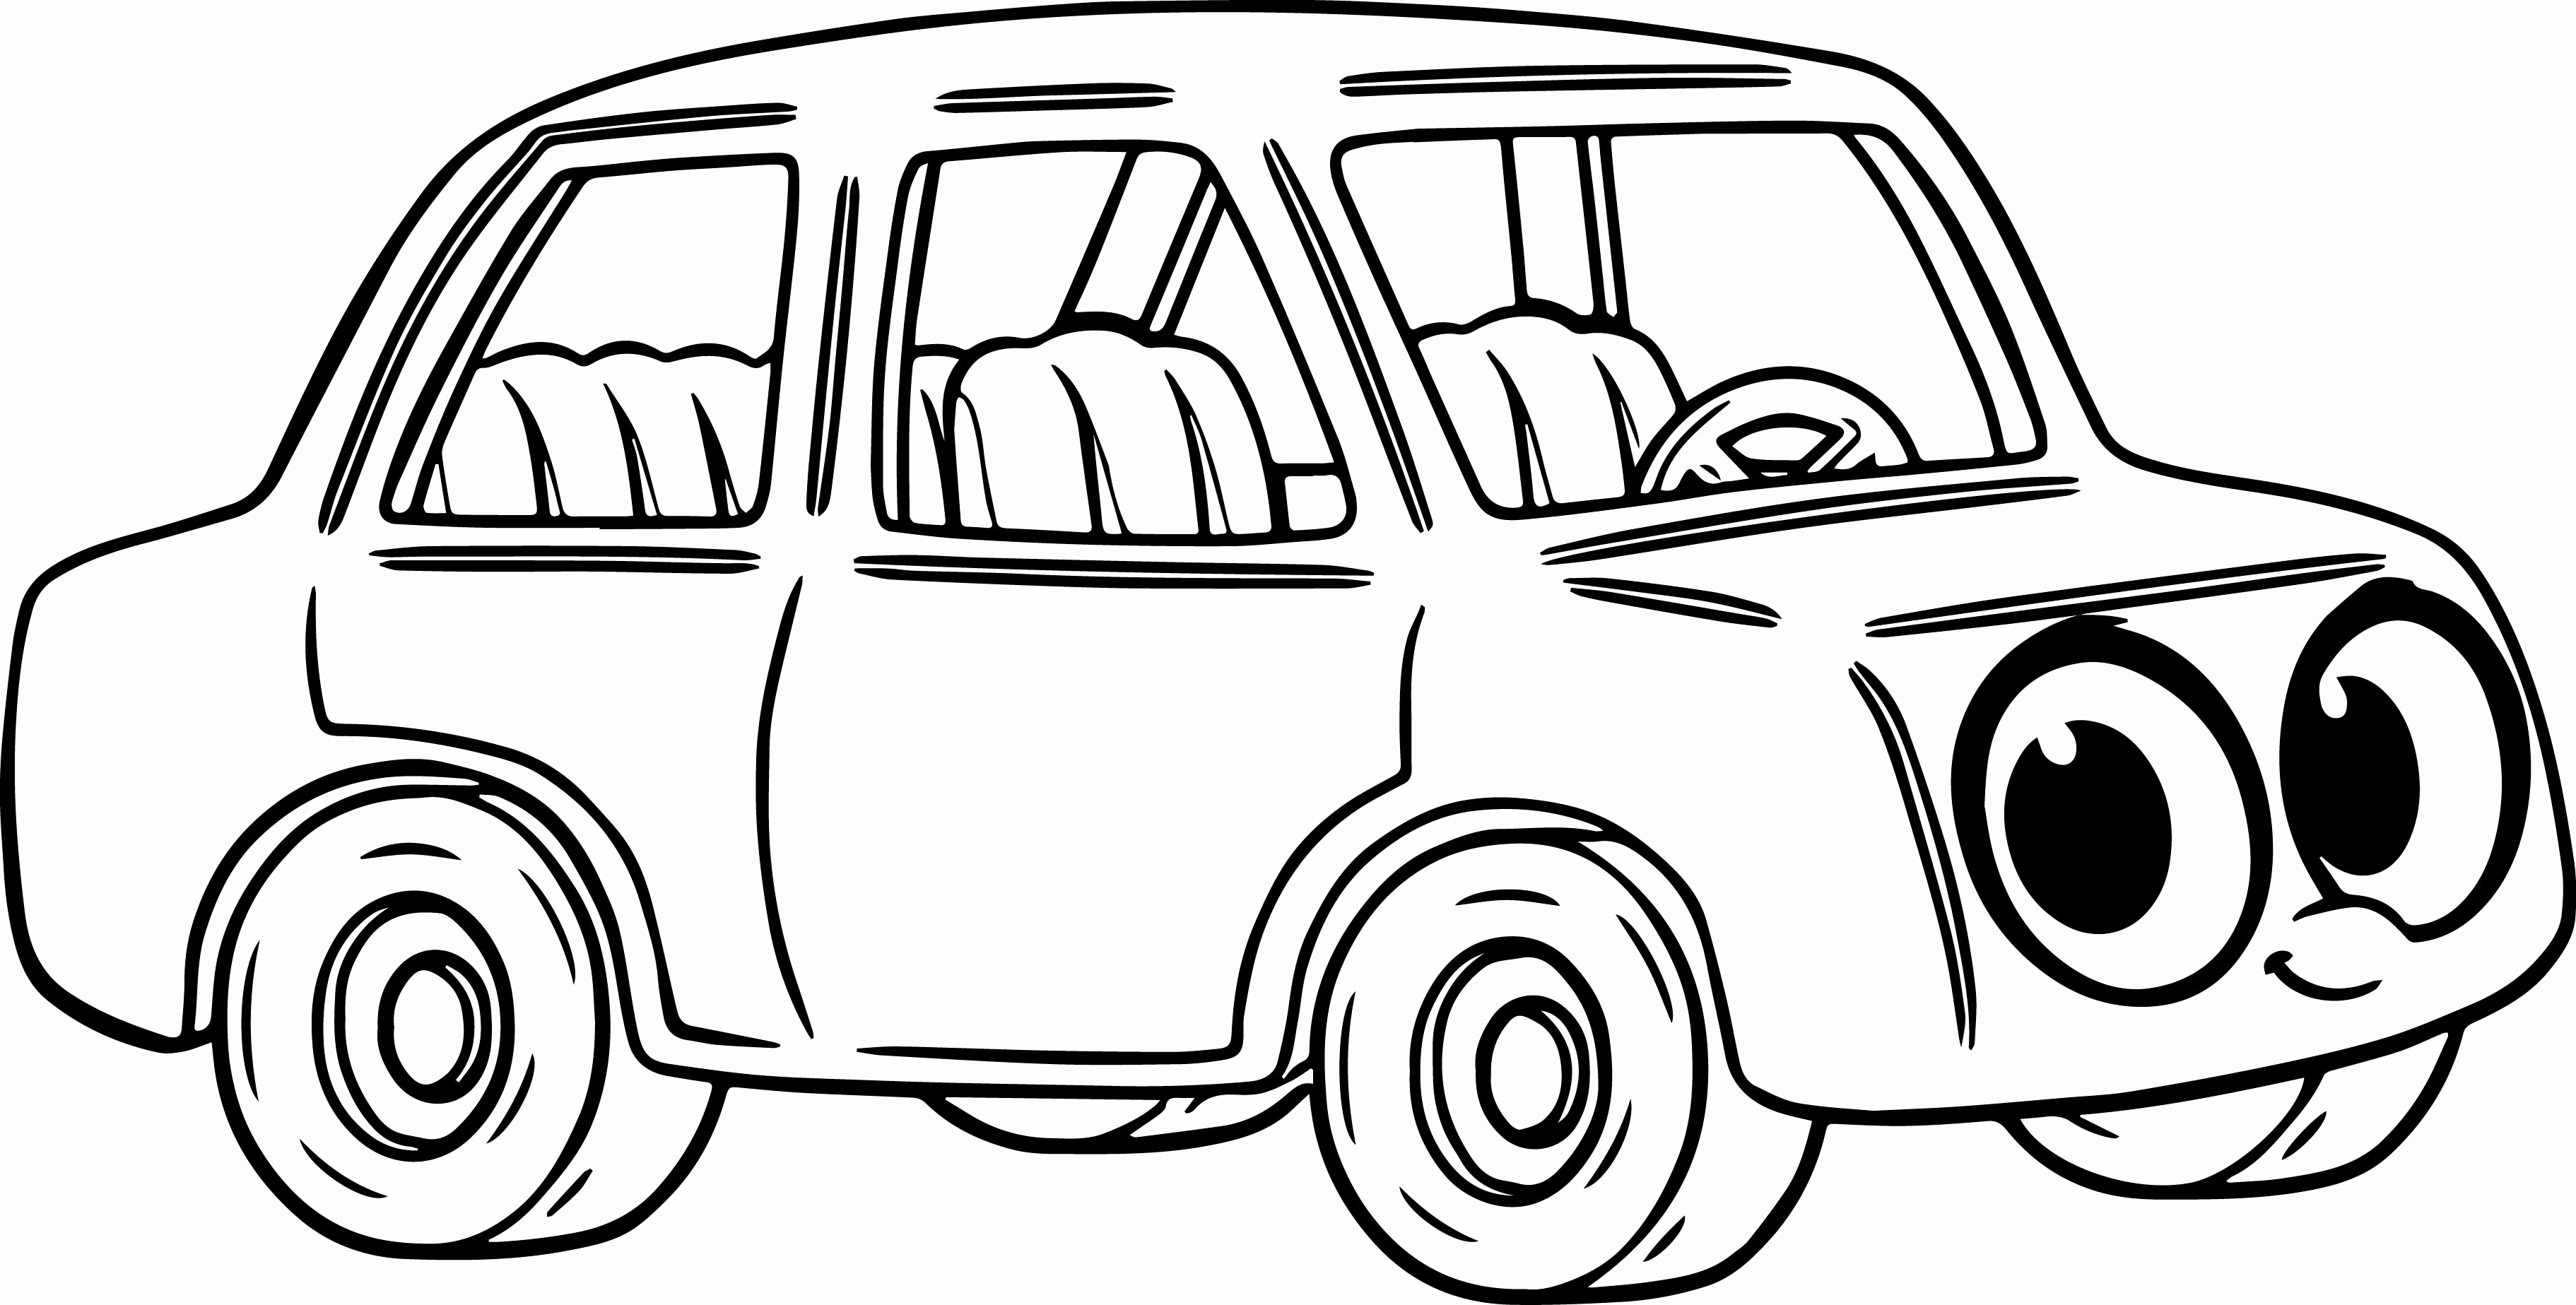 cars coloring pages to print cars coloring pages to print to cars coloring pages print